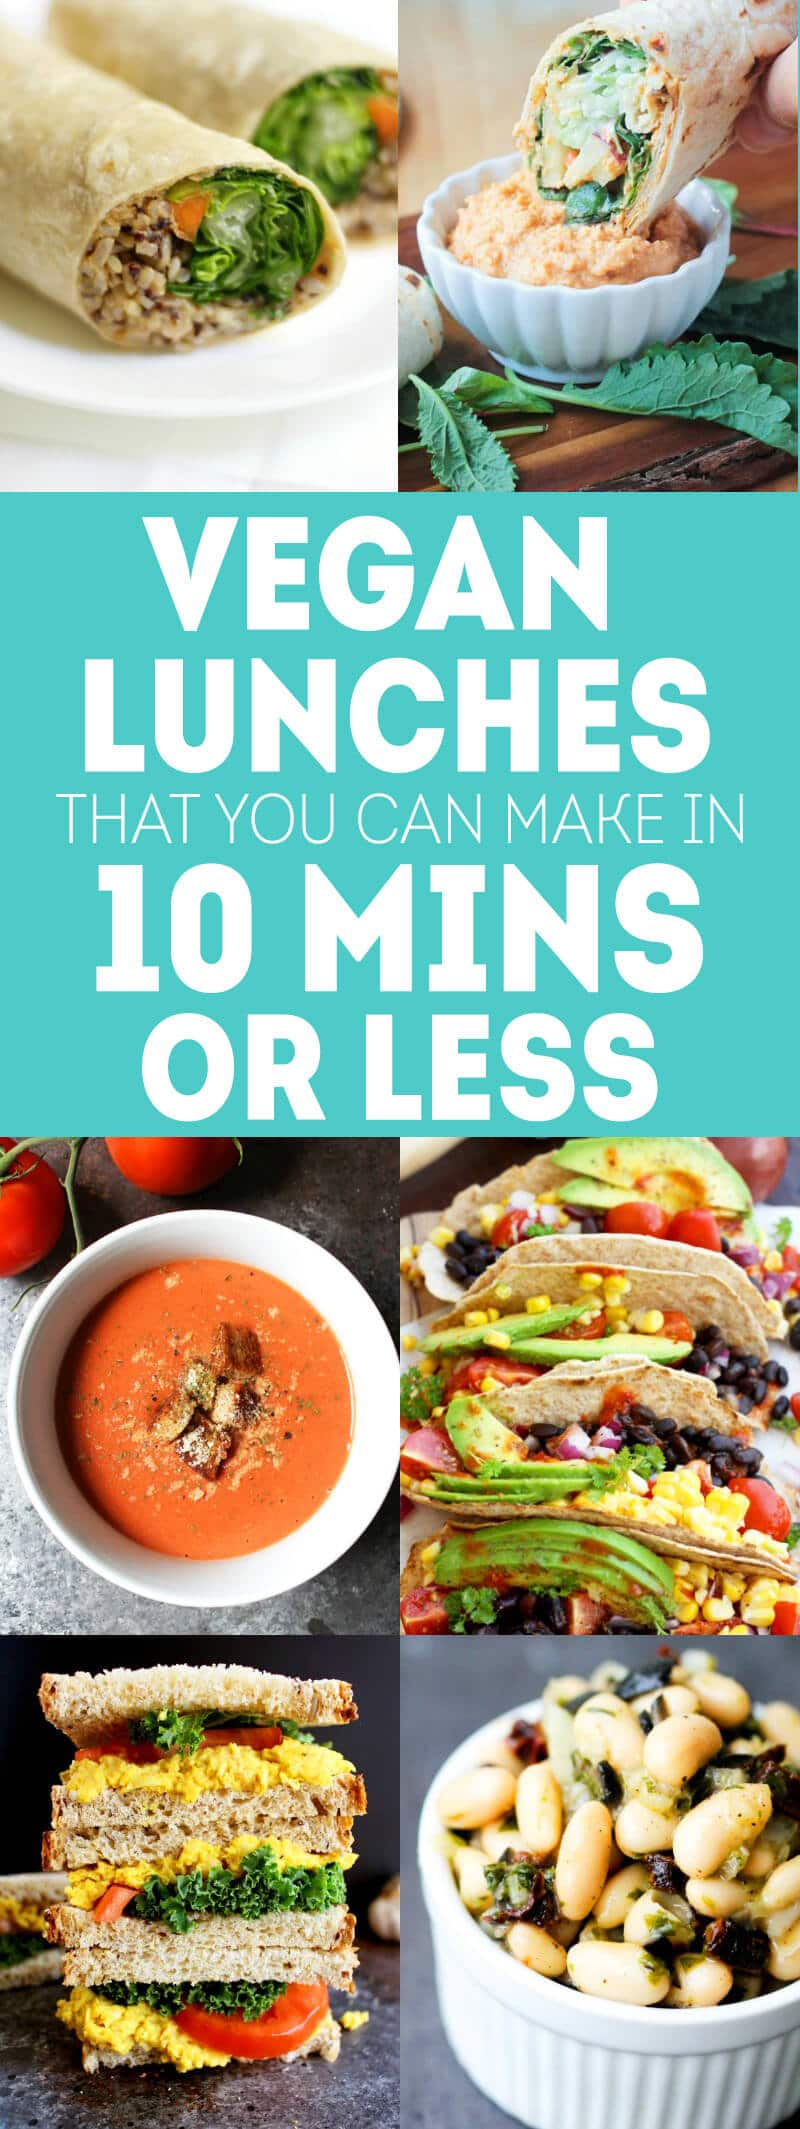 Vegan Lunch Ideas that You Can Make in 10 Mins or LESS!